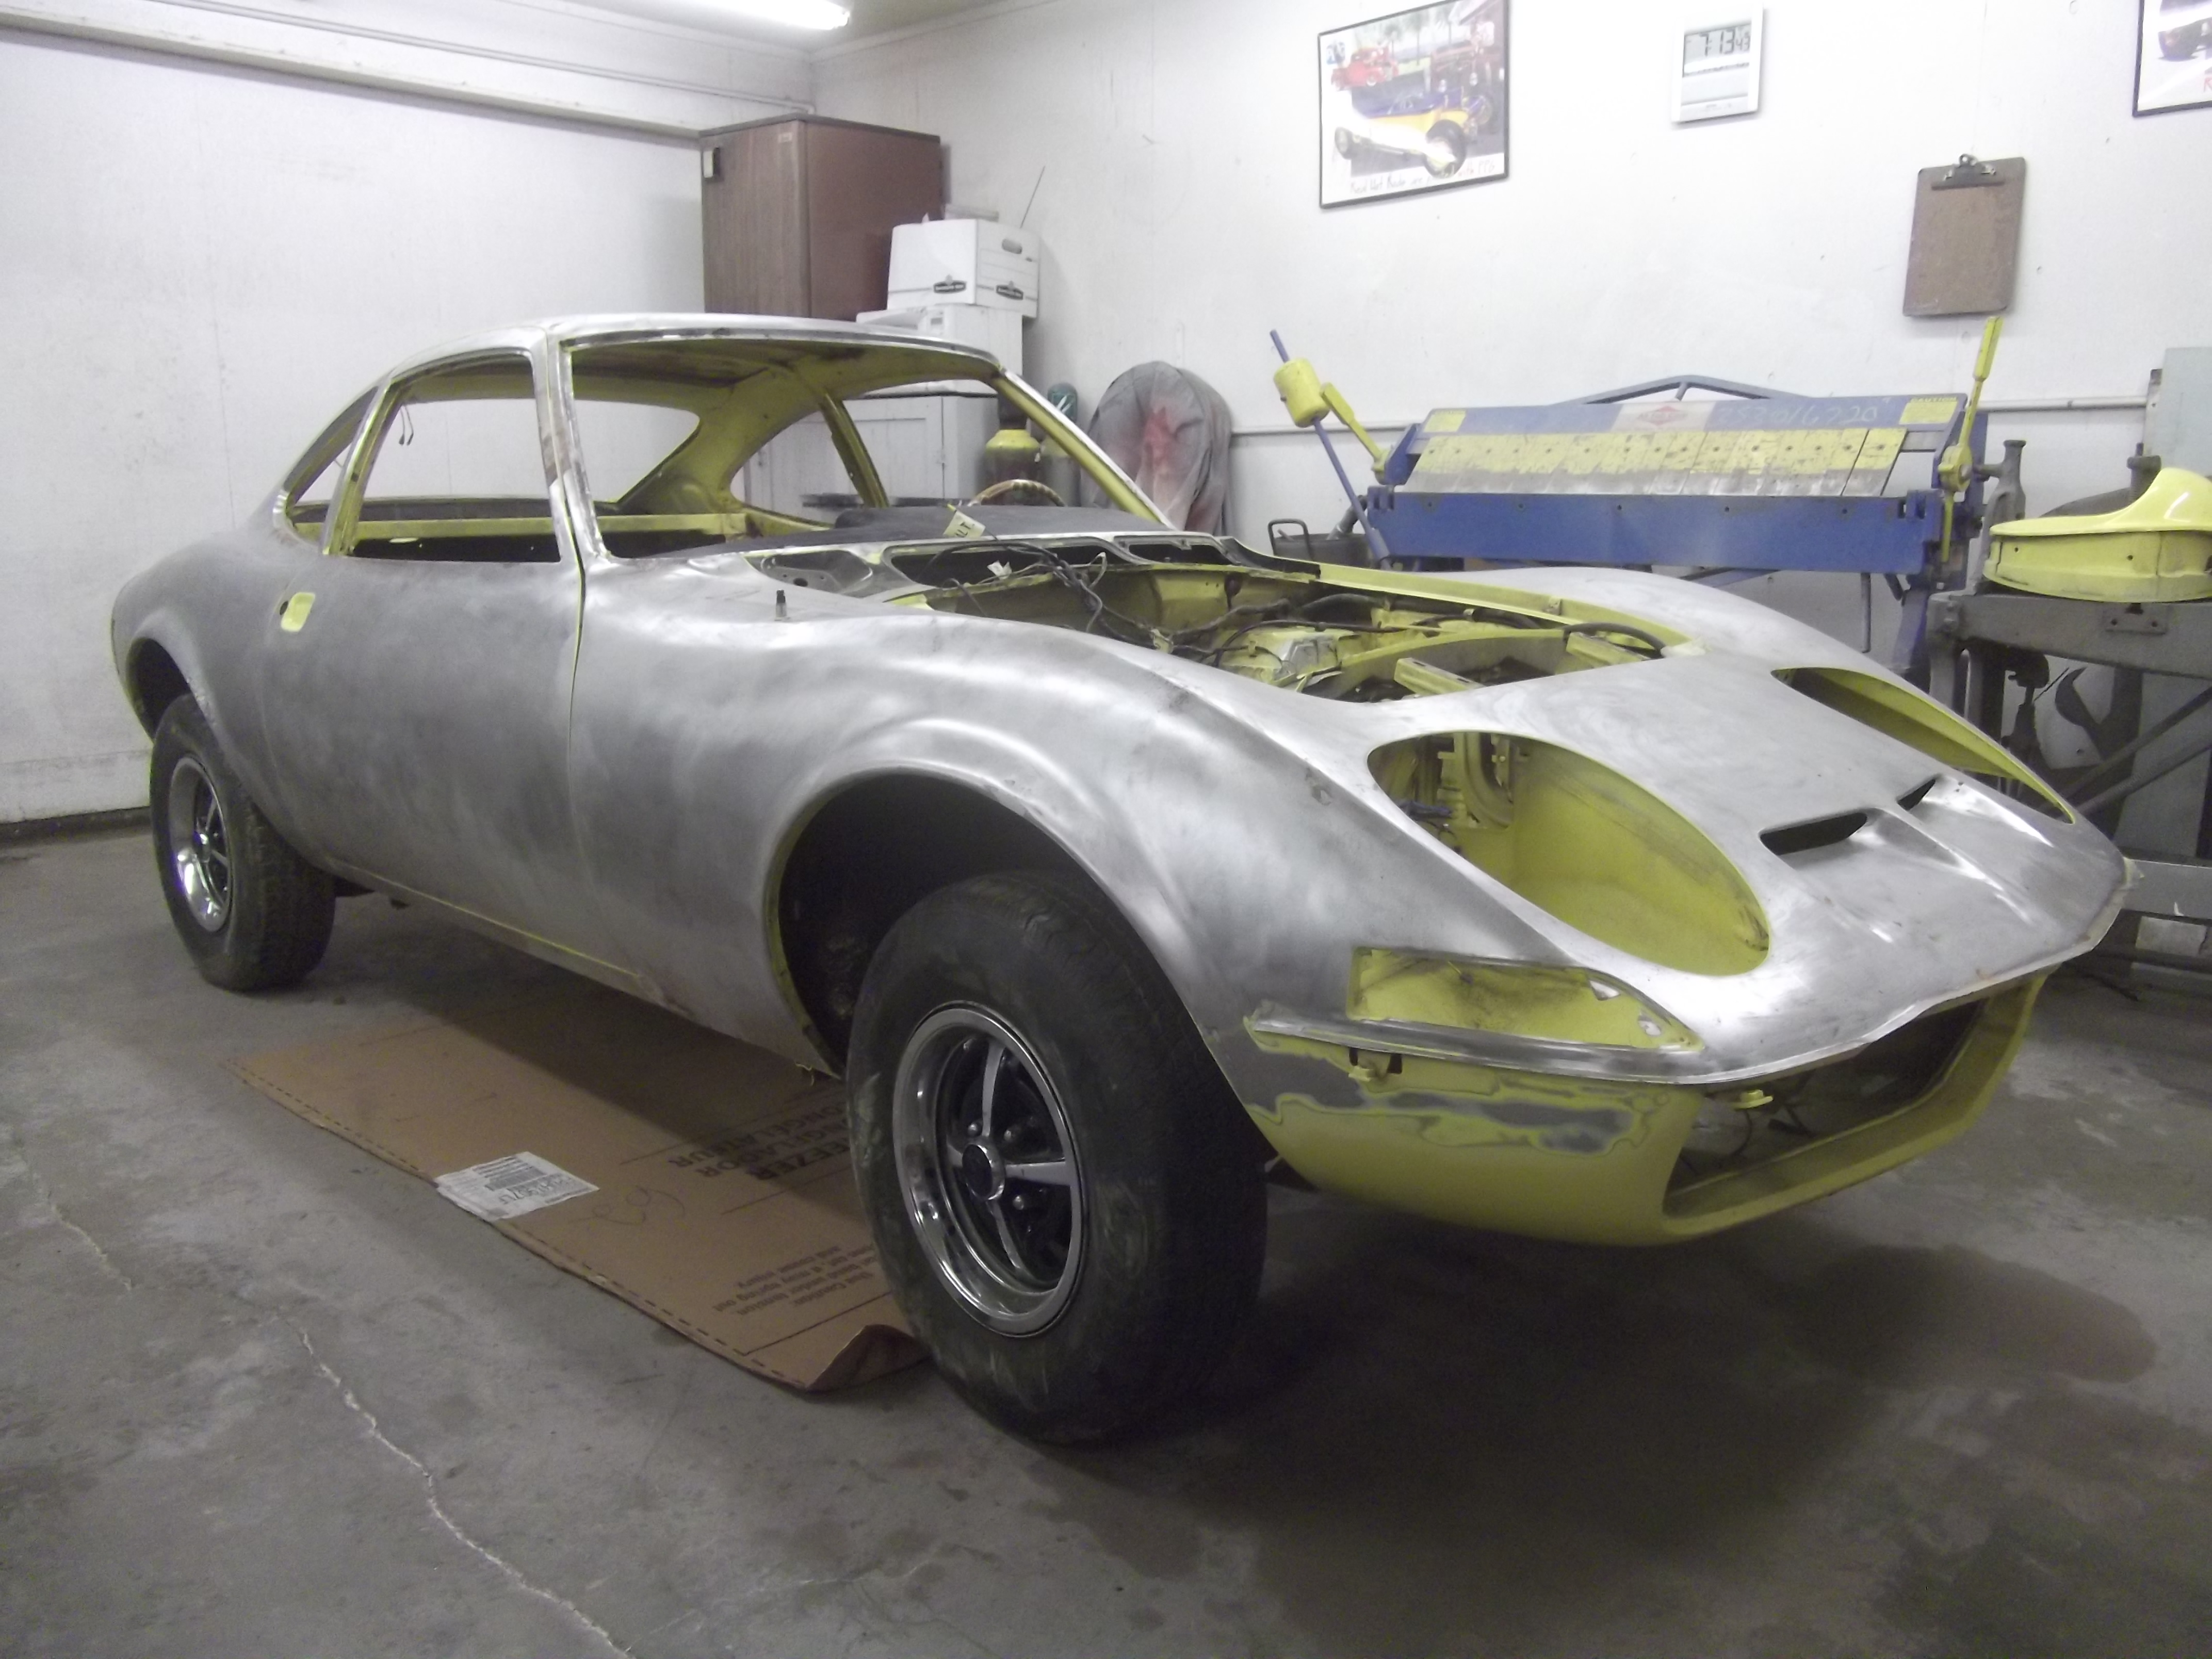 opel gt for sale related images,start 400 - WeiLi Automotive Network